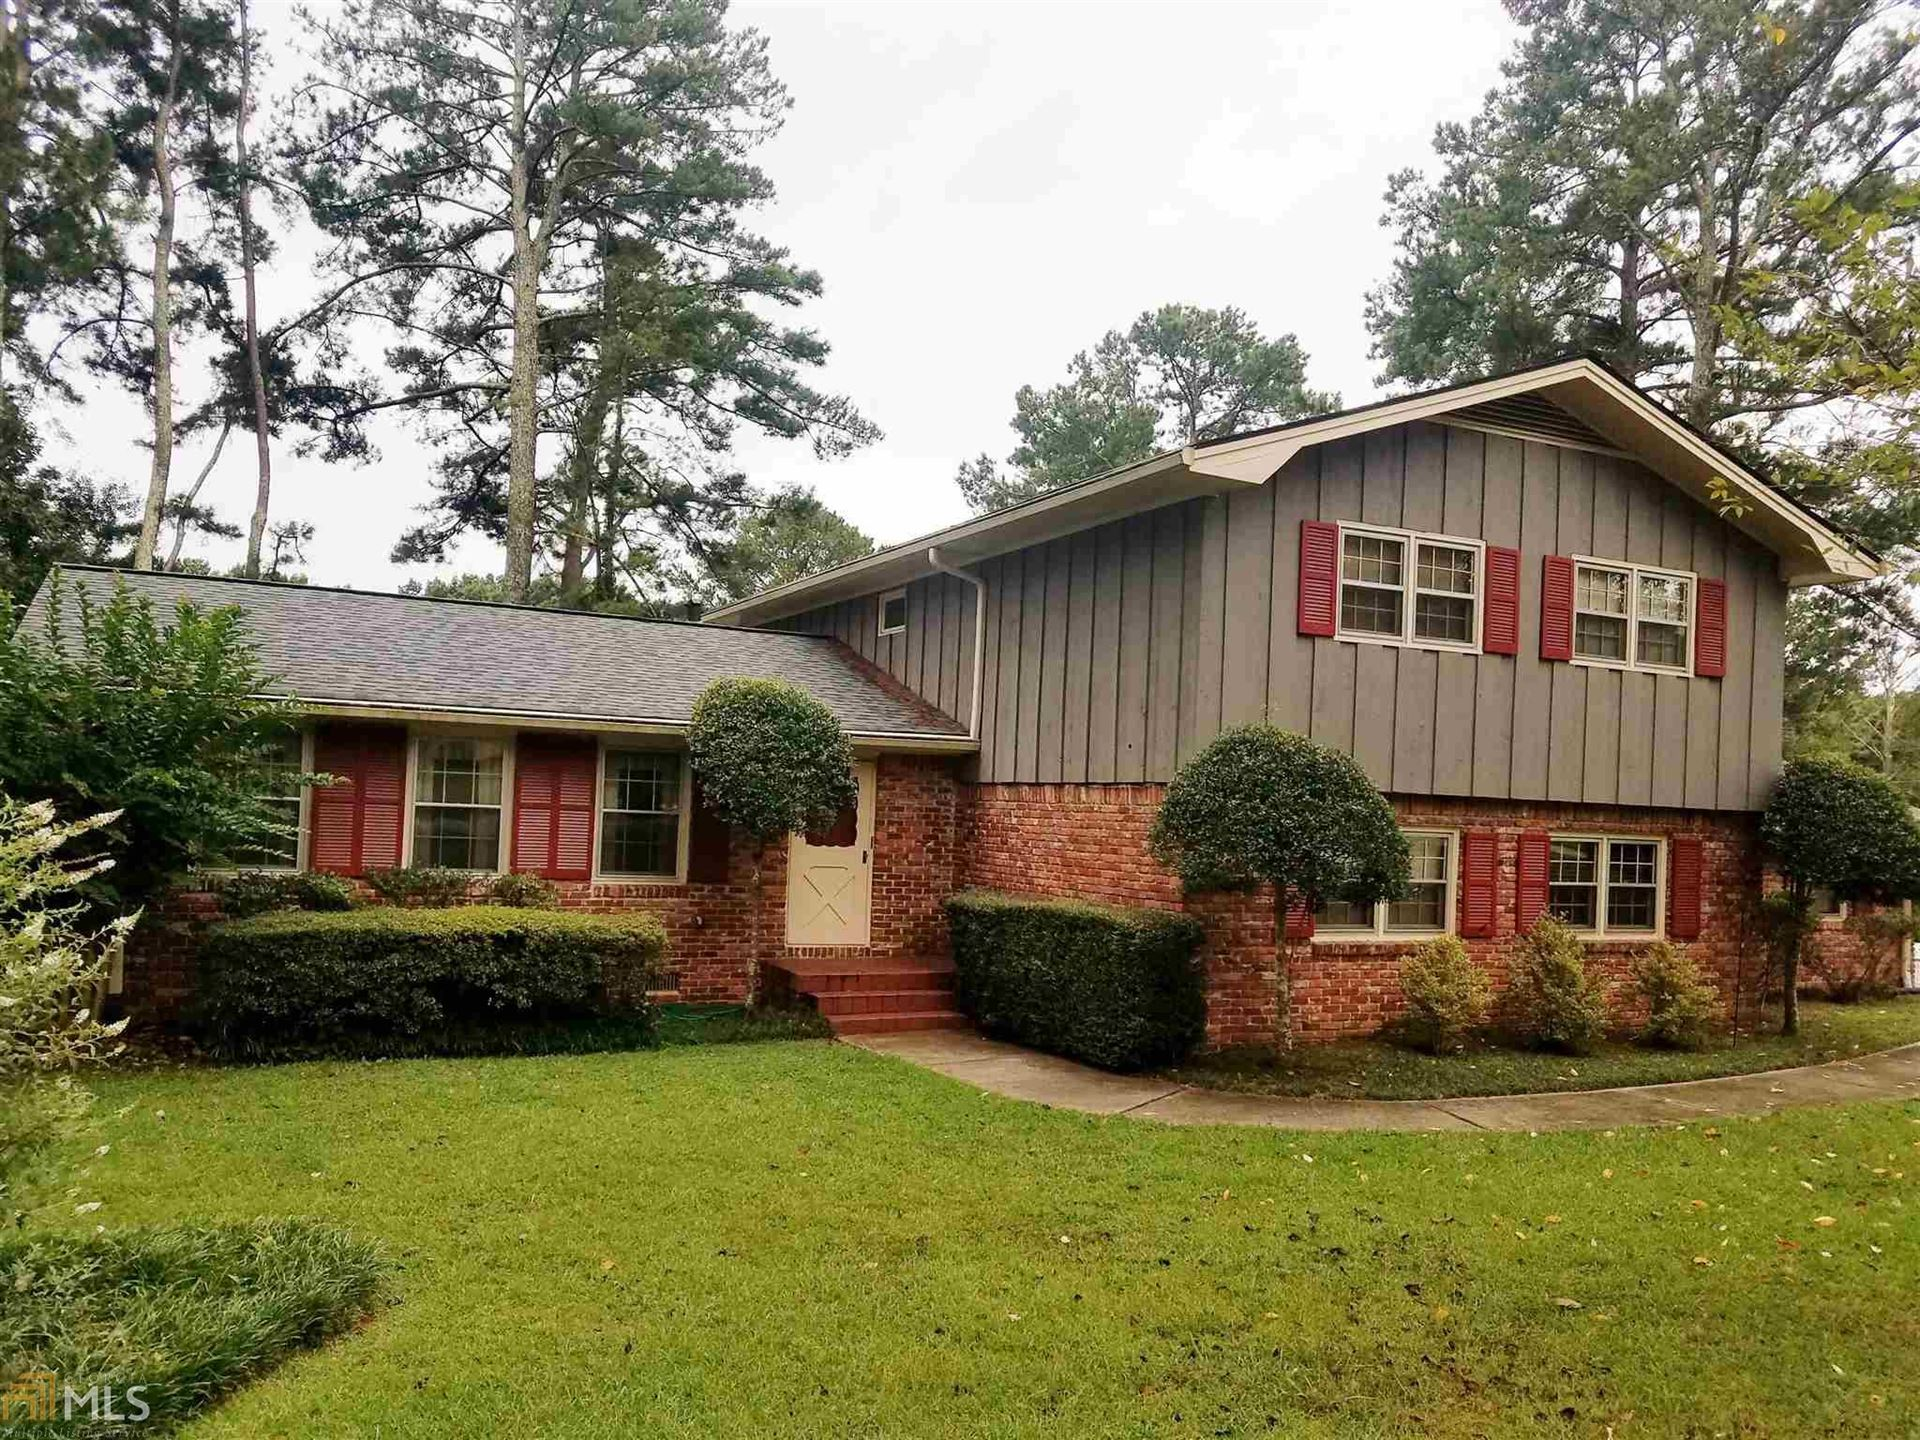 2638 Club Forest Ct, Conyers, GA 30013 - #: 8856423